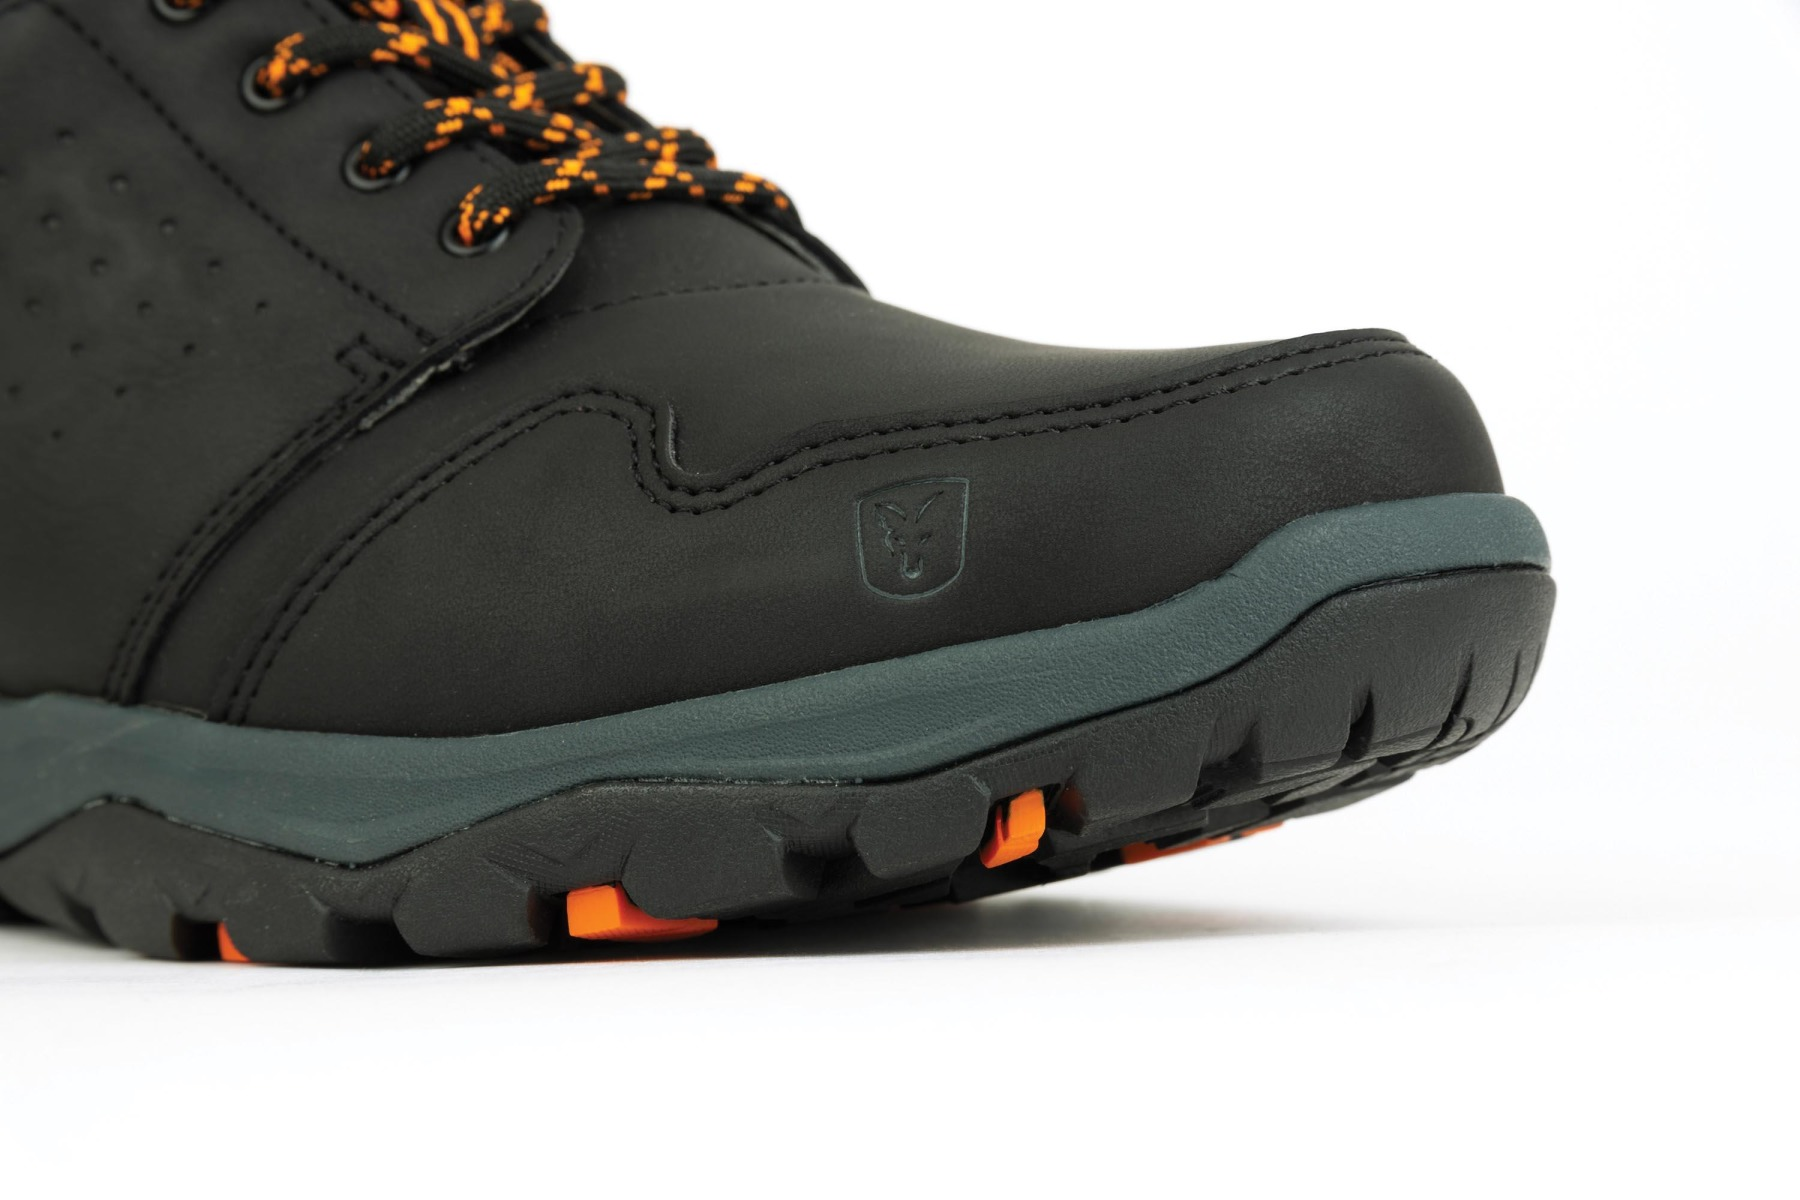 Rugged soles provides excellent grip